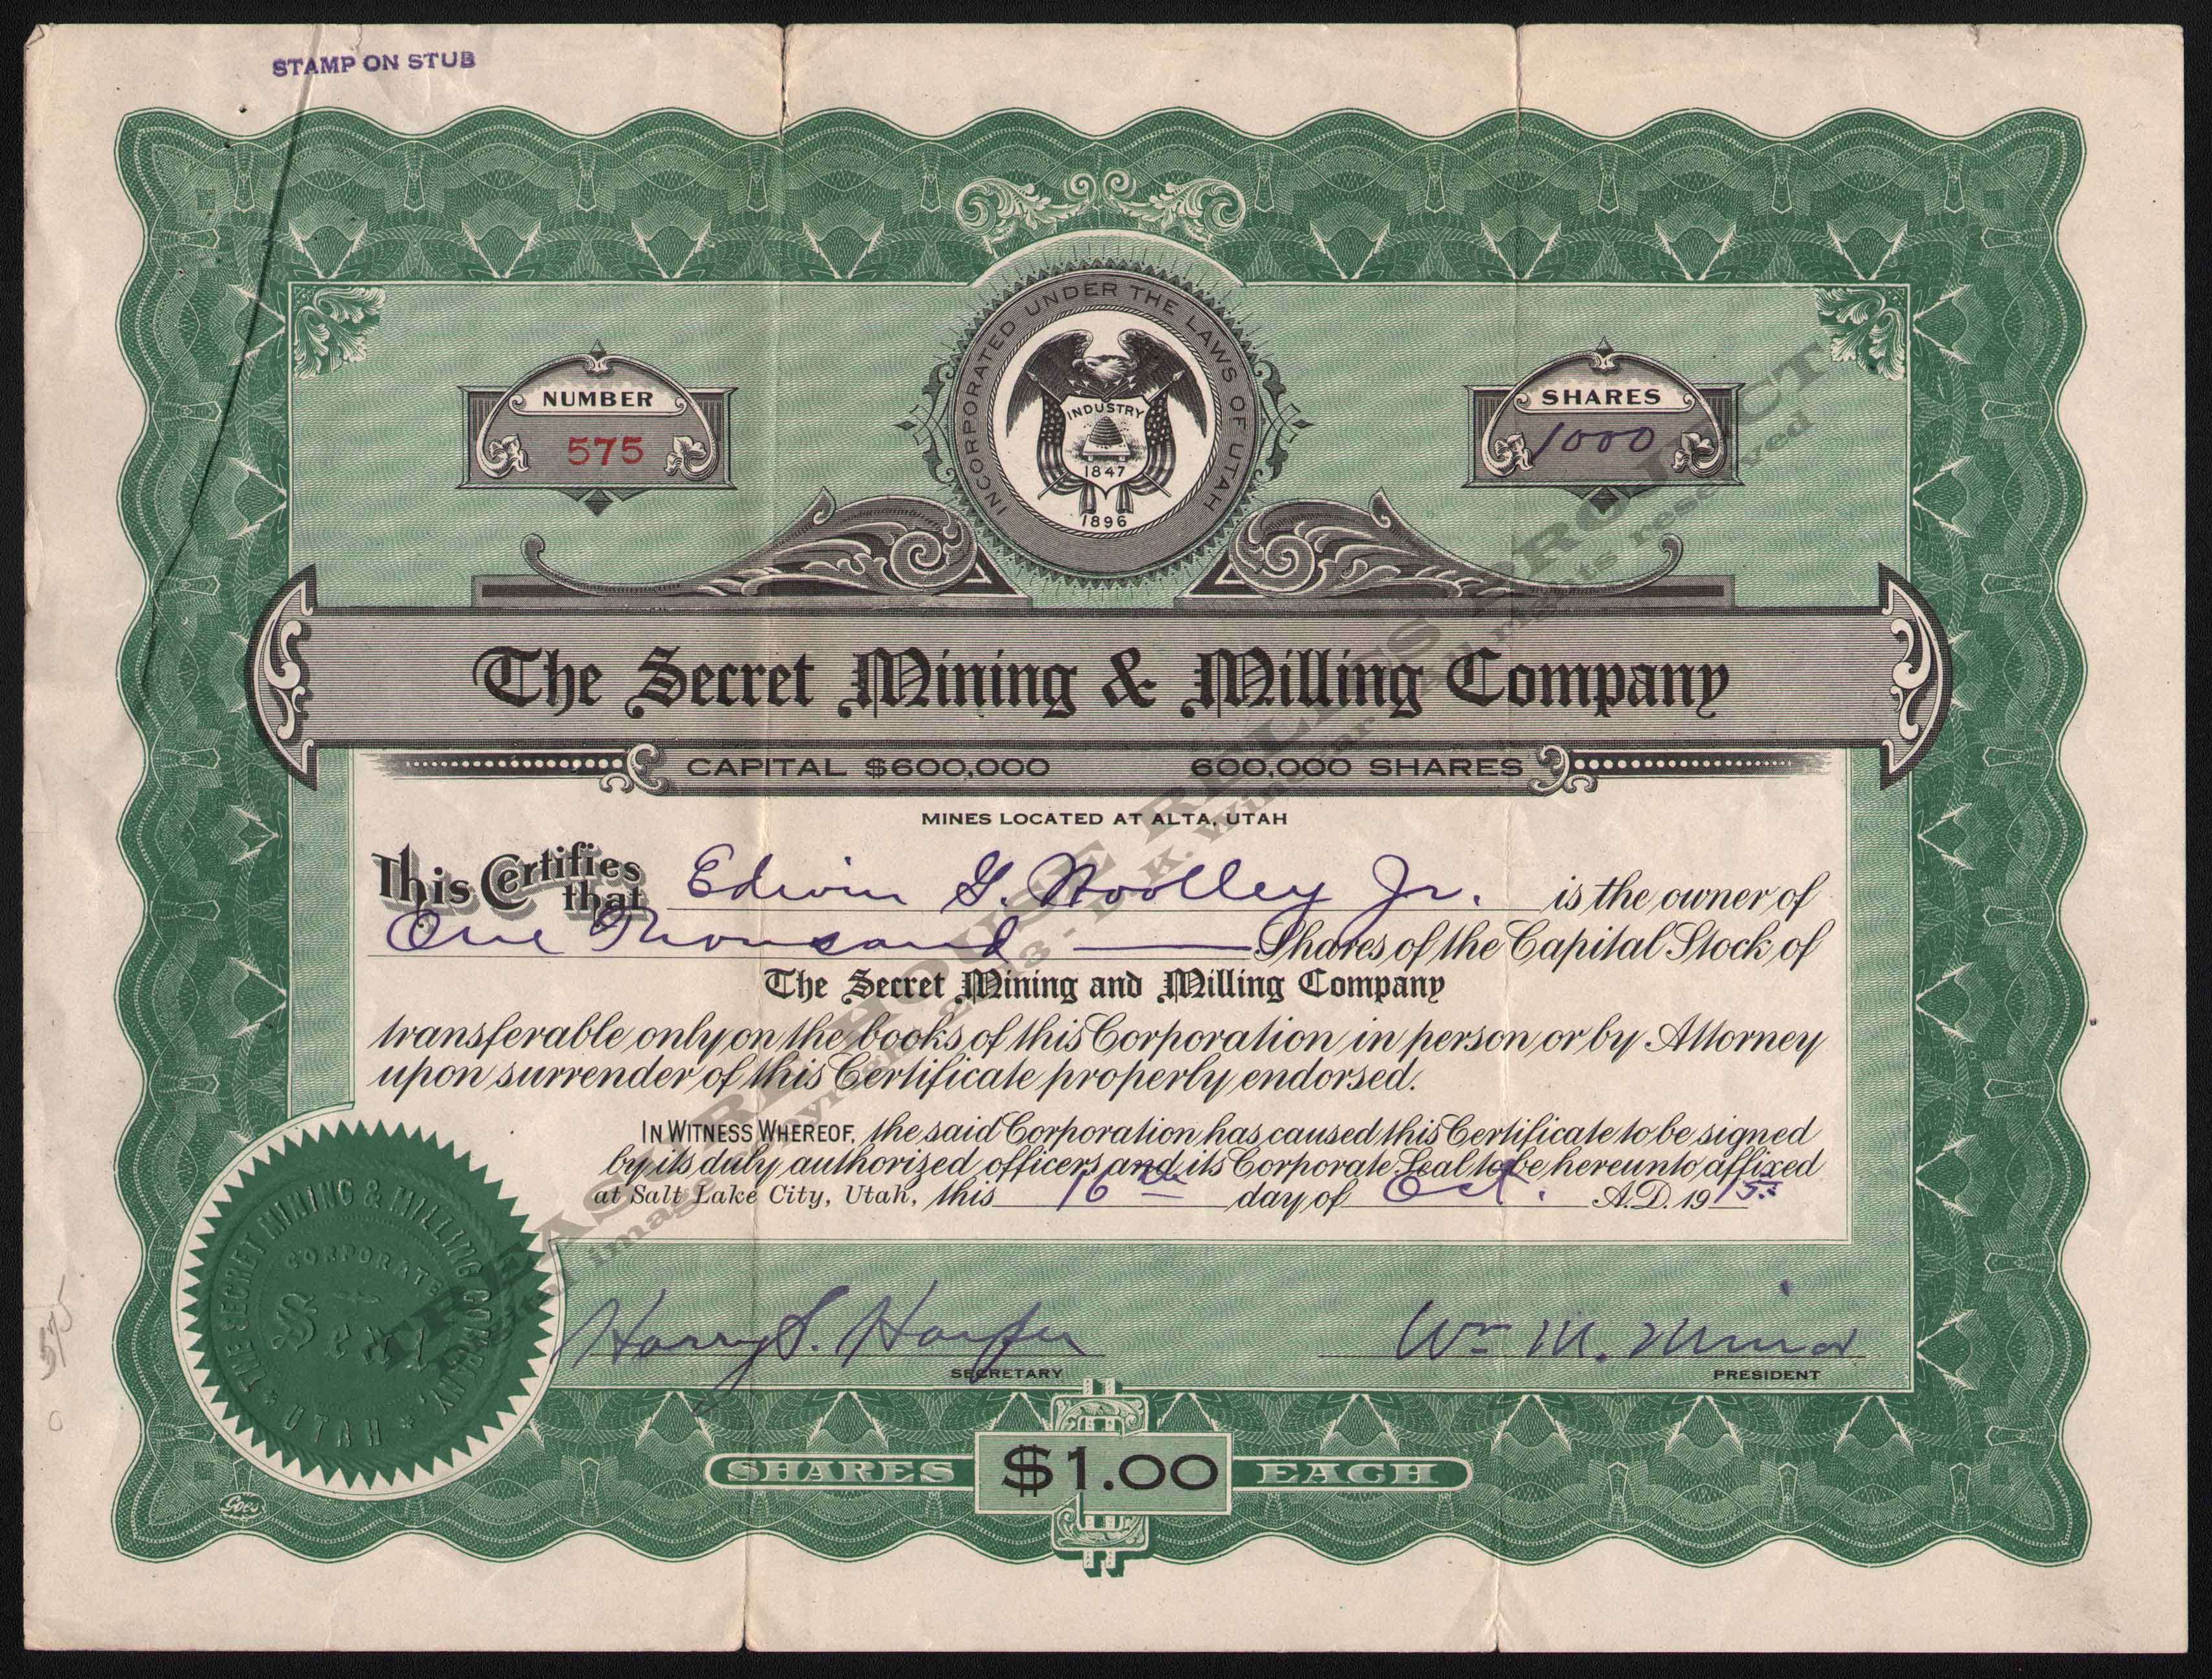 LETTERHEAD/STOCK_SOUTH_HECLA_EXTENSION_MINING_COMPANY_317_1916_DSW_300_CROP_EMBOSS.jpg